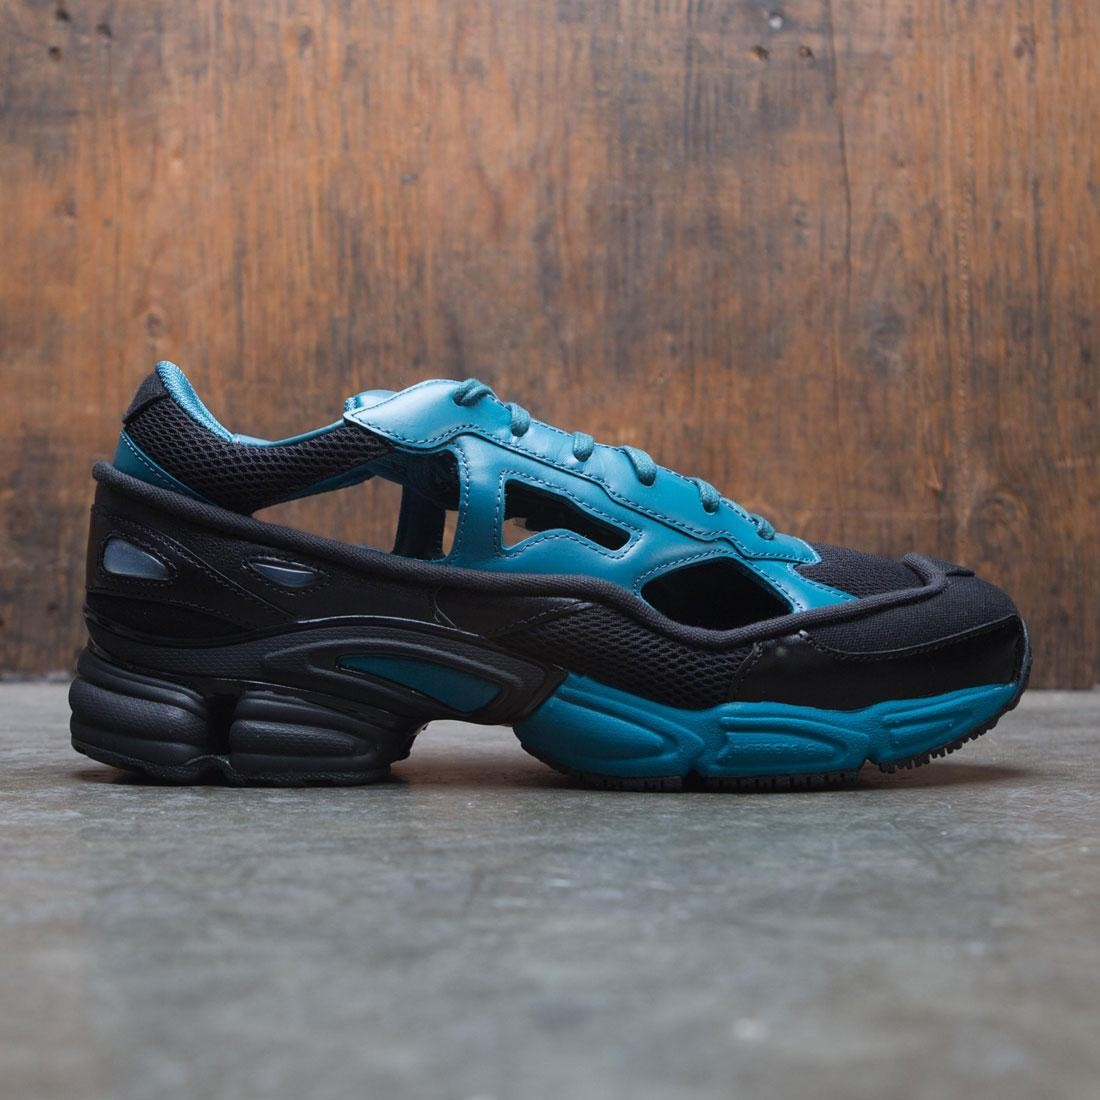 423e7f3da8148d Adidas x Raf Simons Men Replicant Ozweego black colonial blue core black